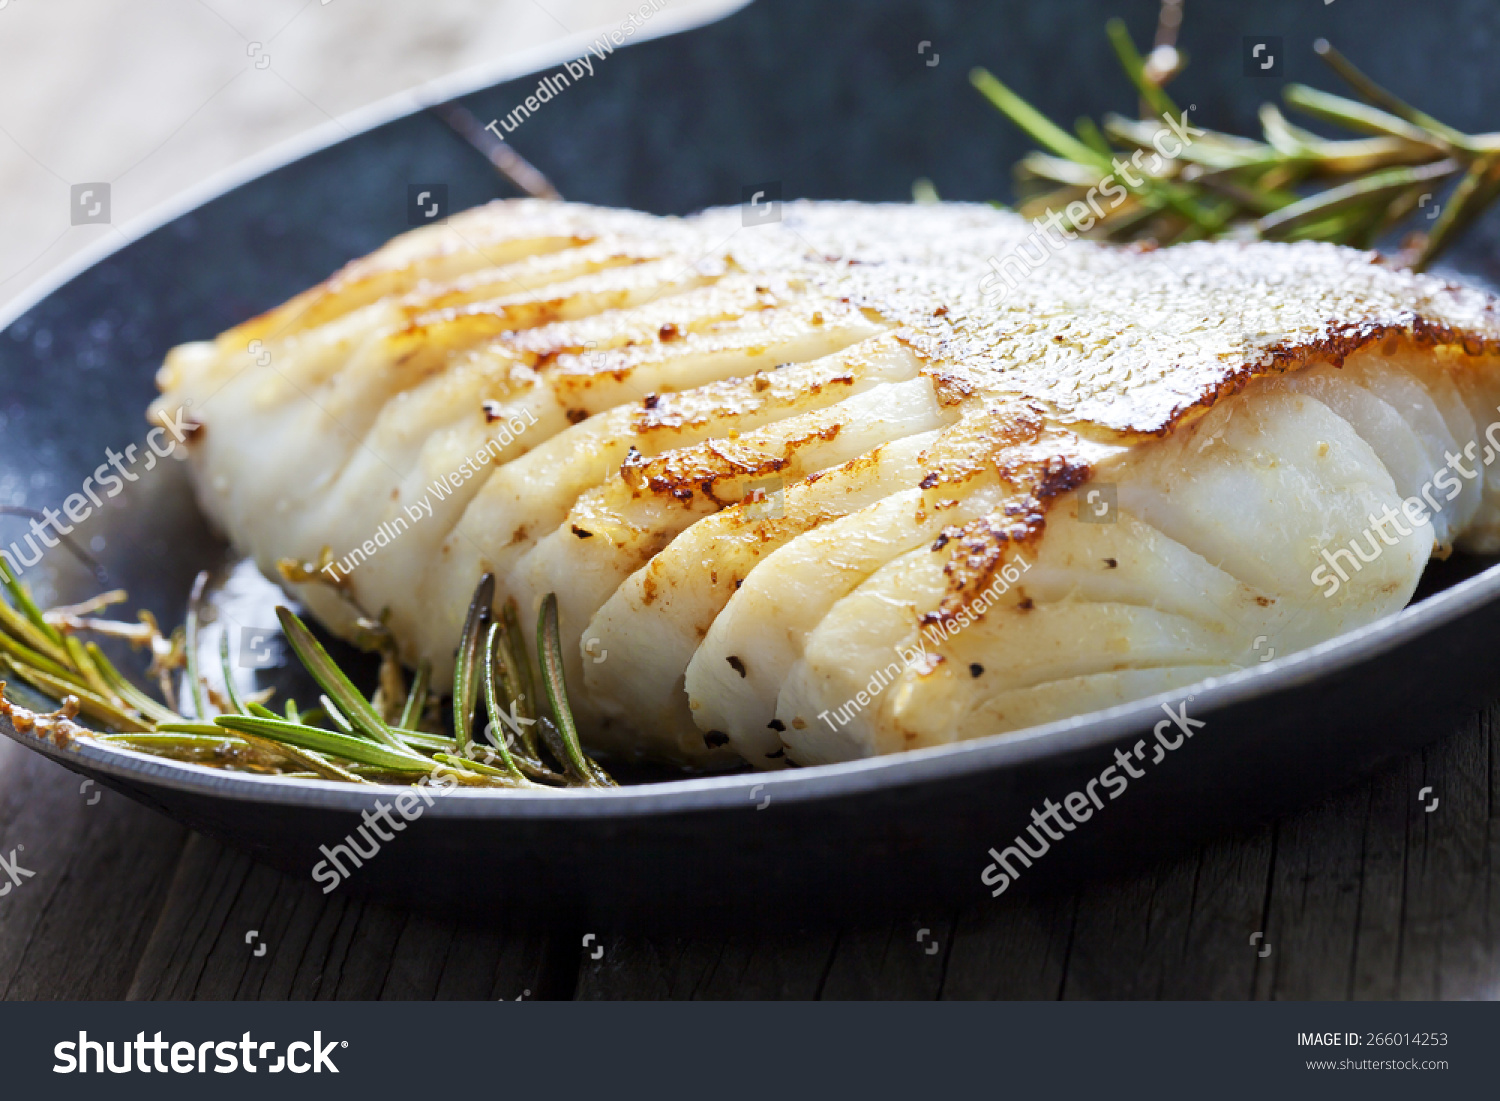 how to cook cod in frying pan